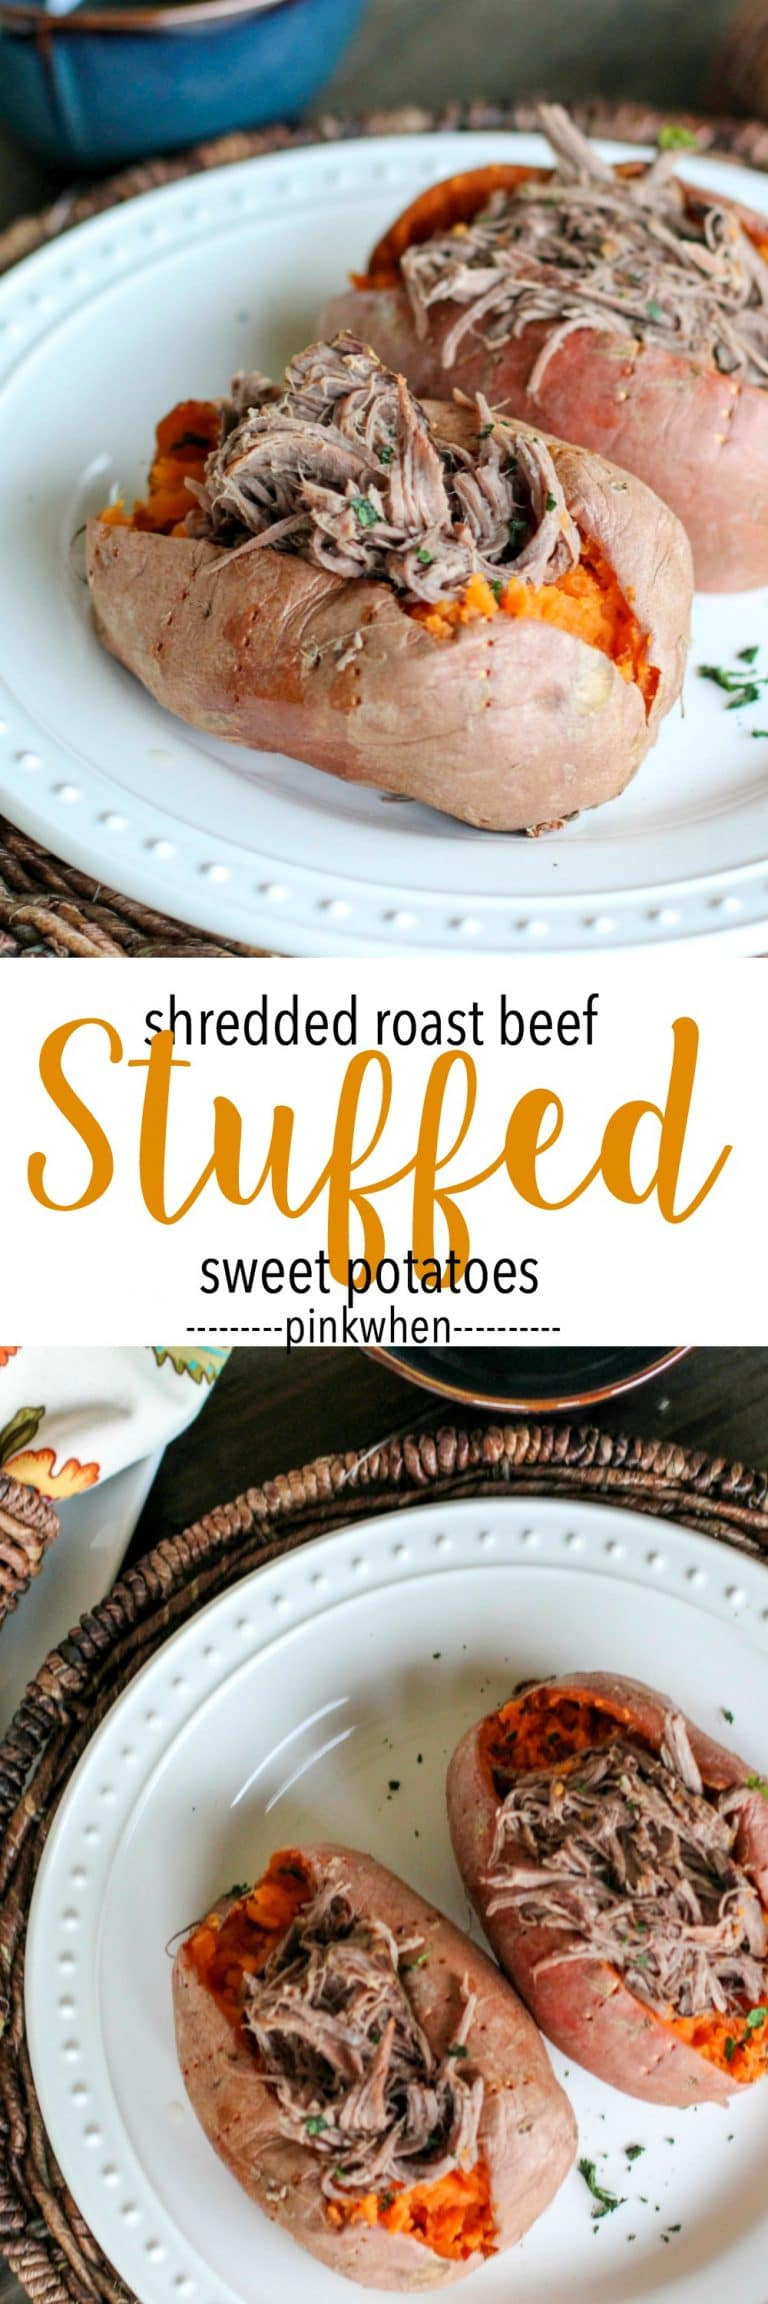 Shredded Roast Beef Stuffed Sweet Potatoes on white plate